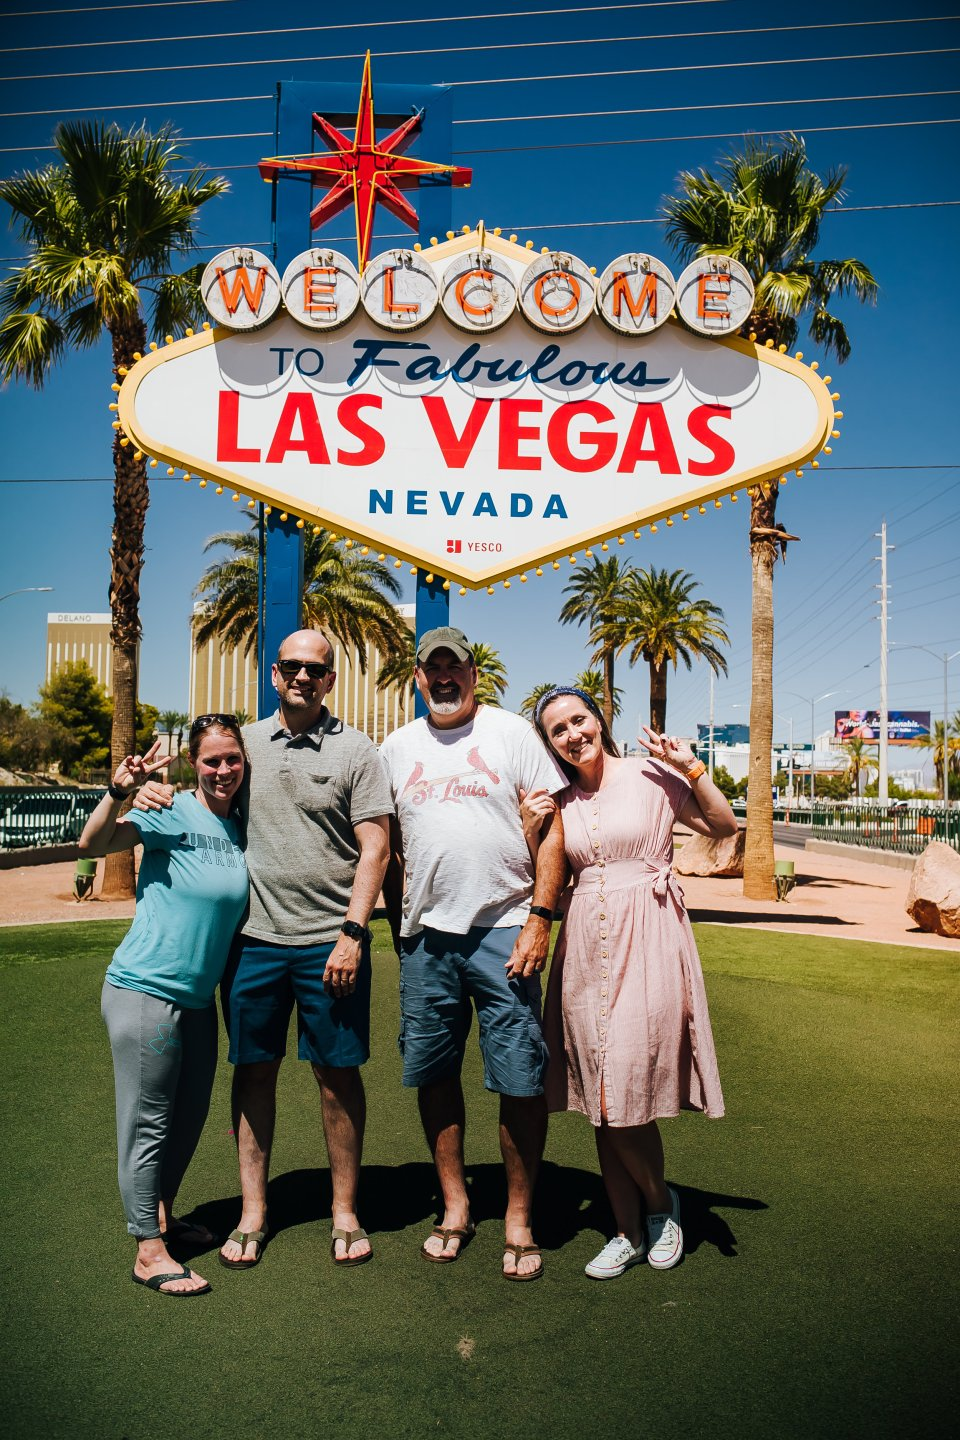 The four of us in front of the Las Vegas sign | OUR 4 DAY LAS VEGAS TRIP | J.B. TOLS